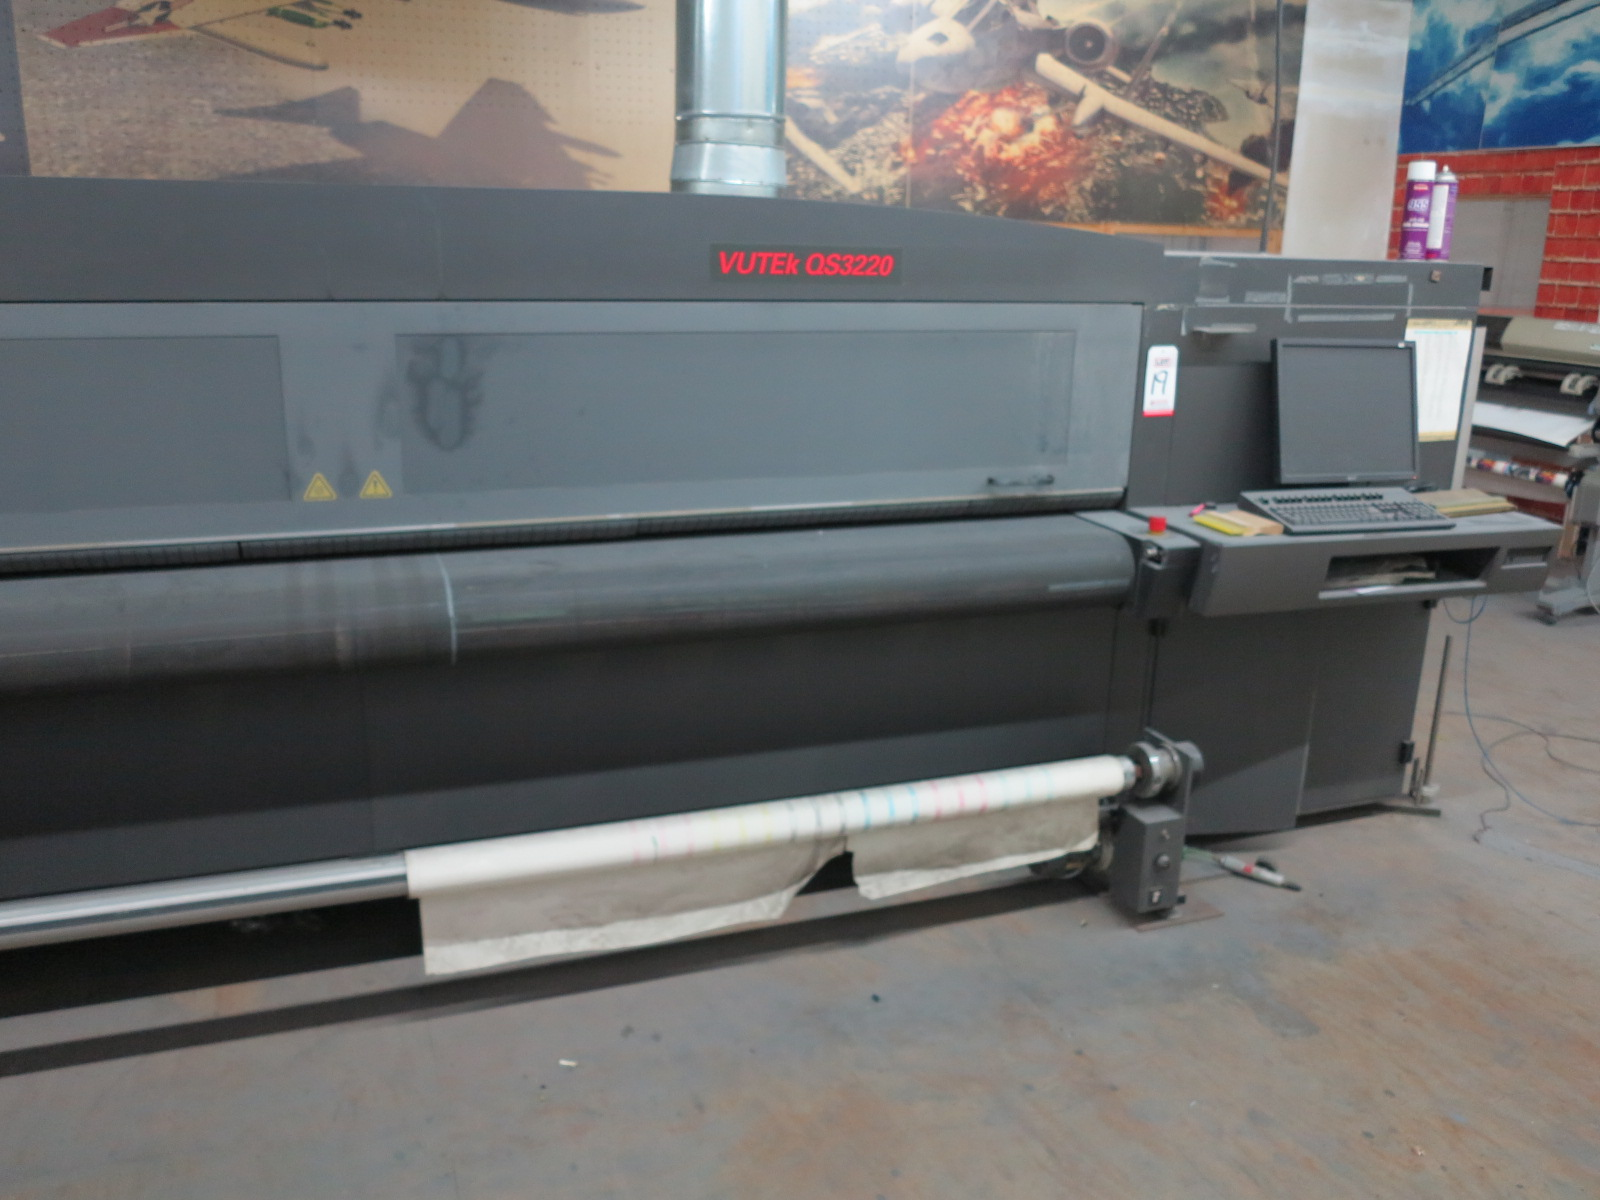 2012 EFI VUTEK QS3220 SUPER LARGE FORMAT PRINTER, FOR RIDGID AND ROLL-TO-ROLL PRINTING, S/N 630312 - Image 2 of 5